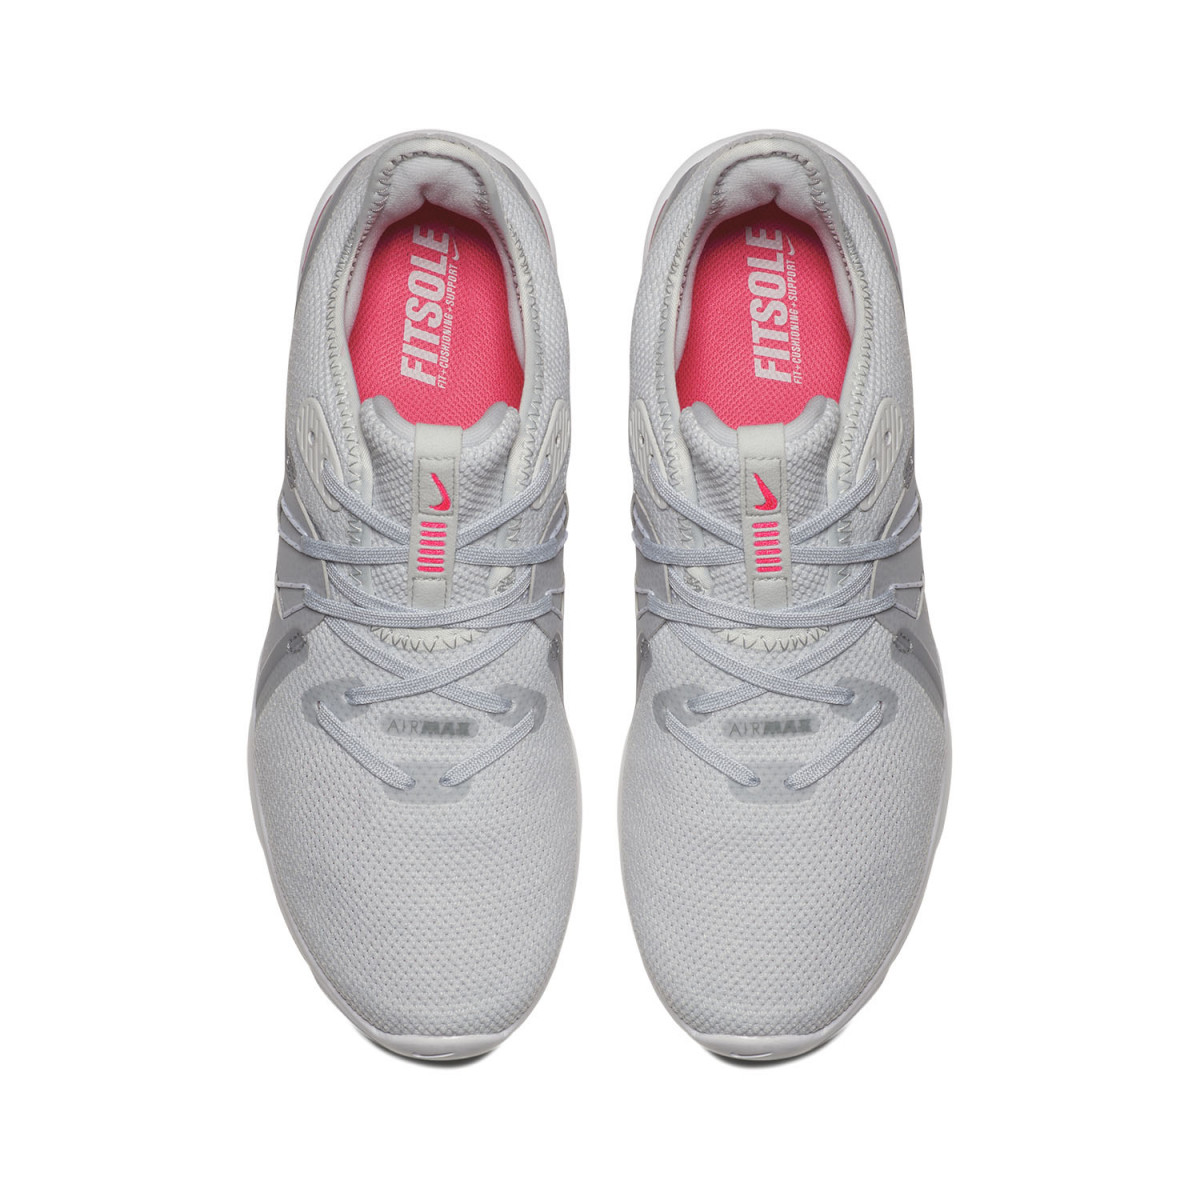 hot sale online 6dfd0 c1232 Zapatillas Nike Air Max Sequent 3 - Mujer